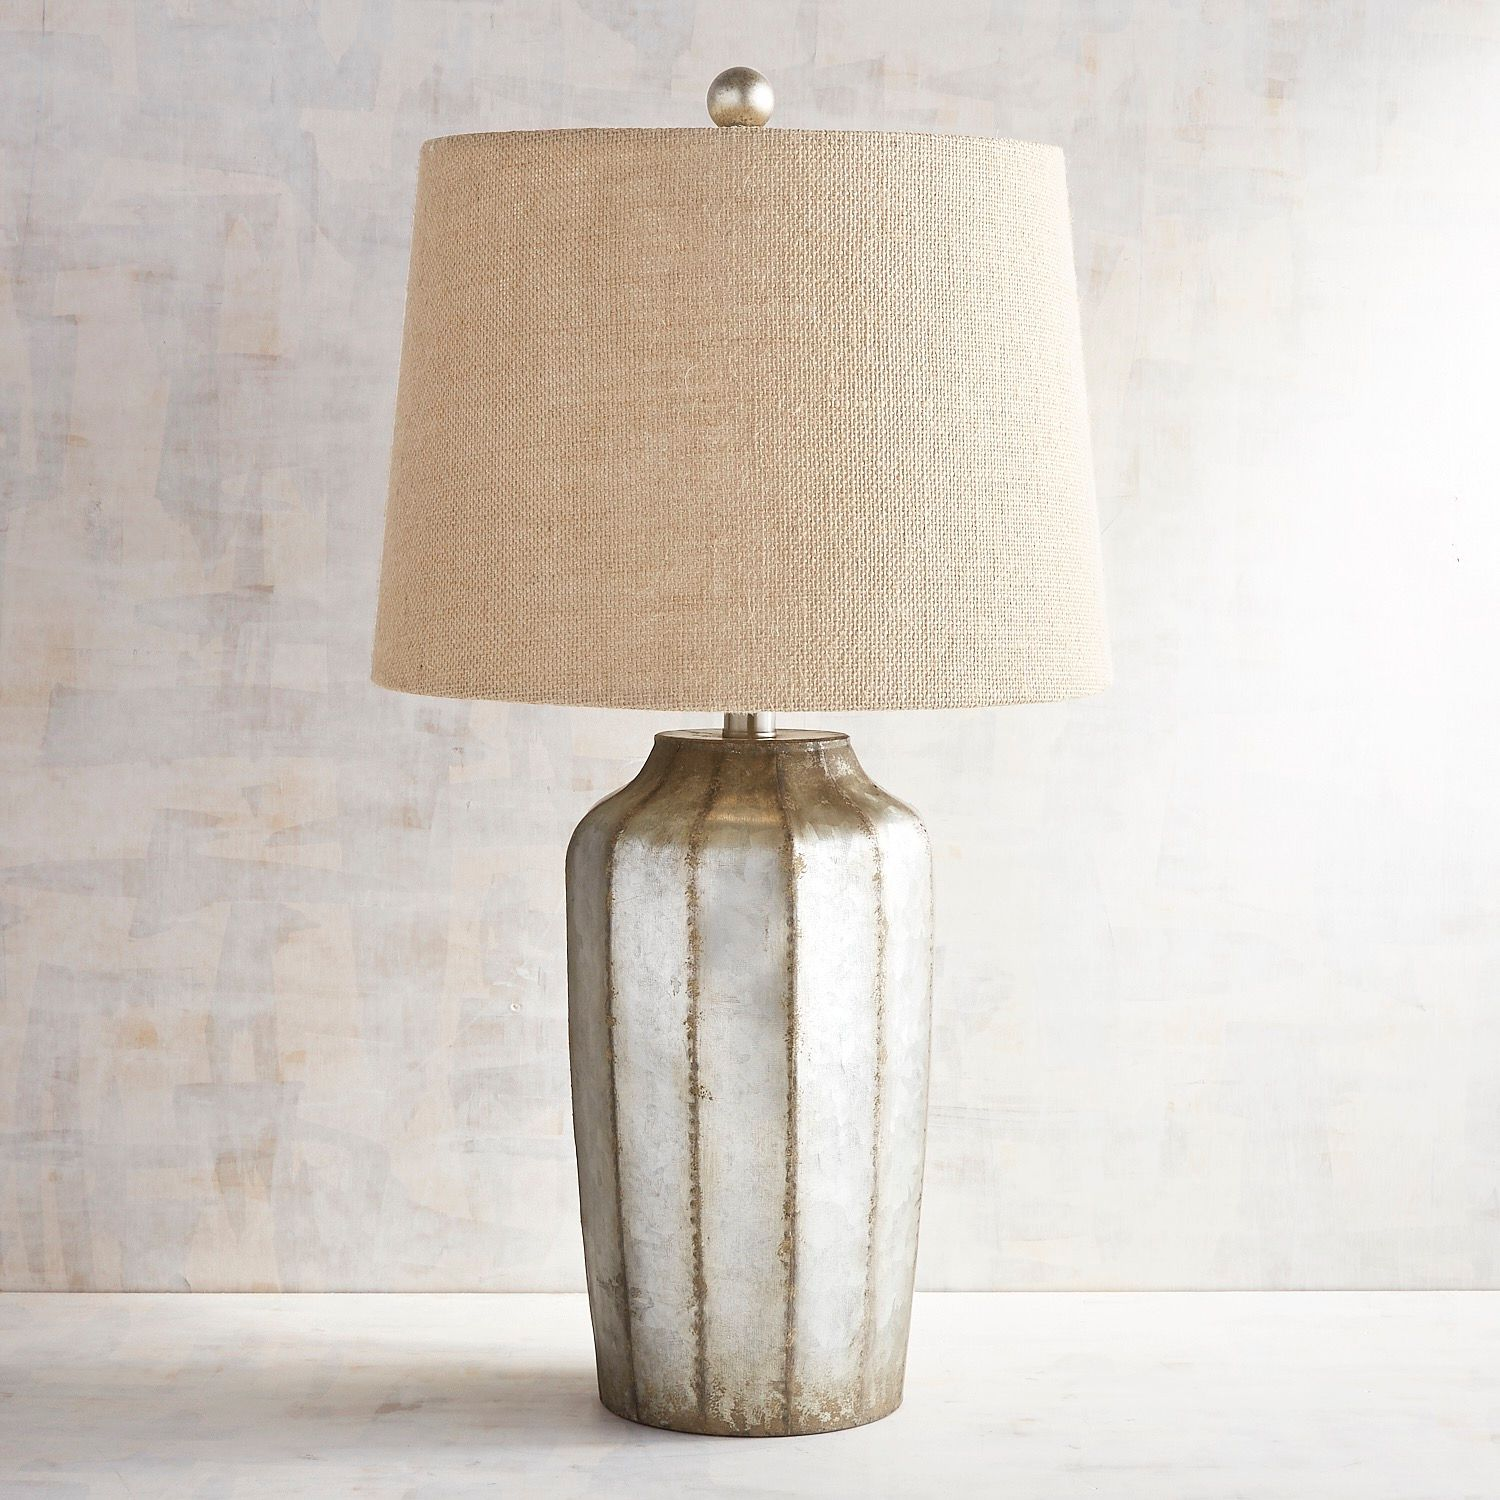 galvanized table lamp pier imports one accent lamps cordless for living room farm white legs wedding reception decorations hardwood drop leaf with folding chair storage metal